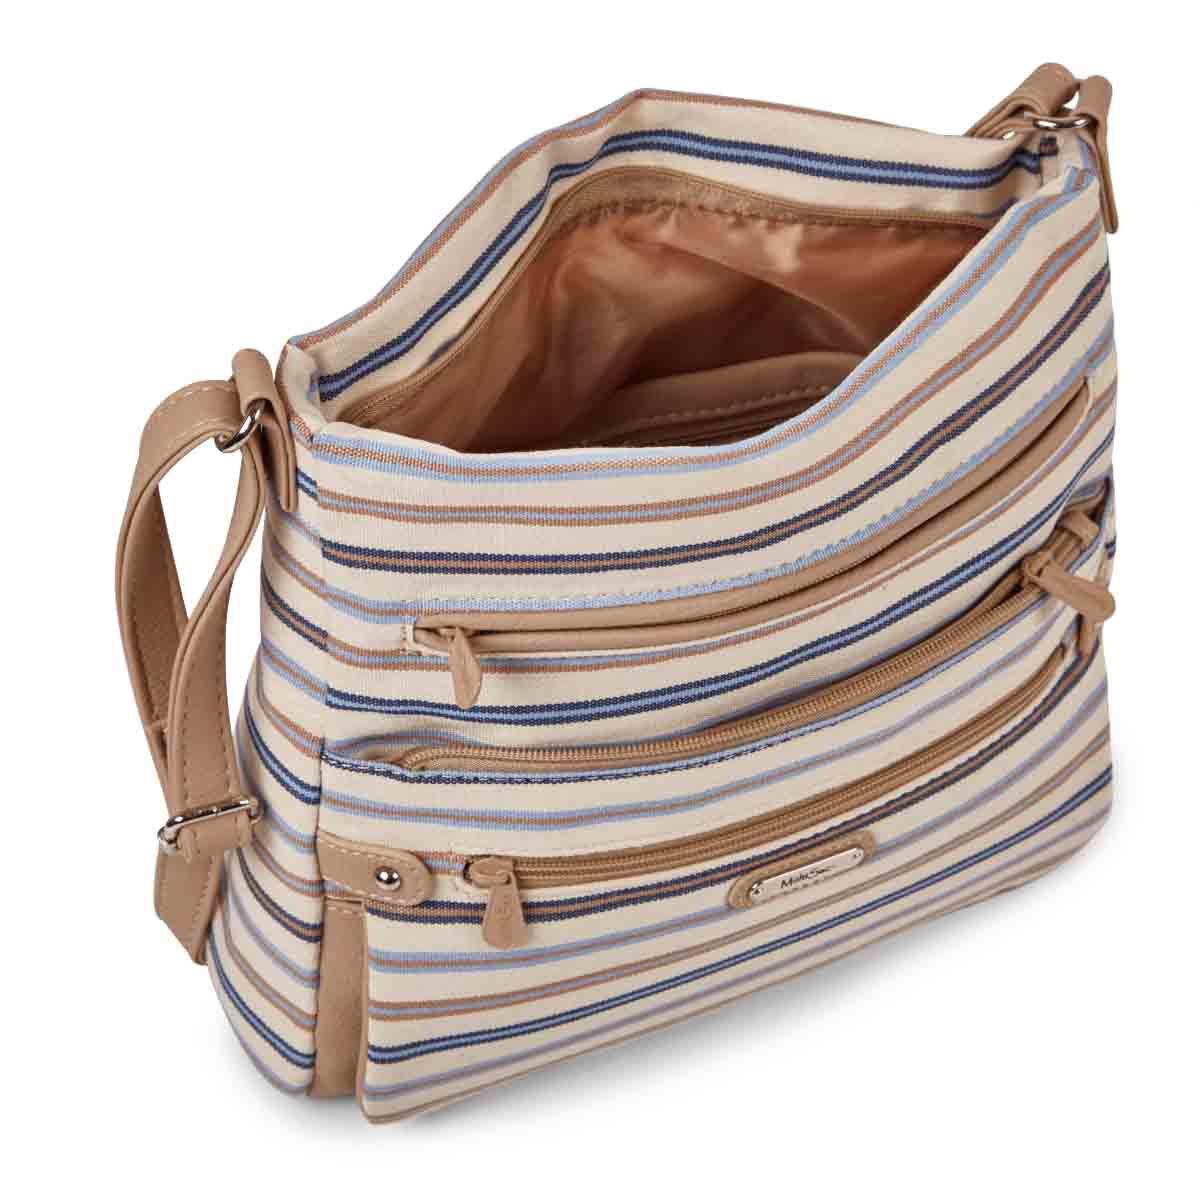 Lds Lorraine clsc stripe crossbody bag